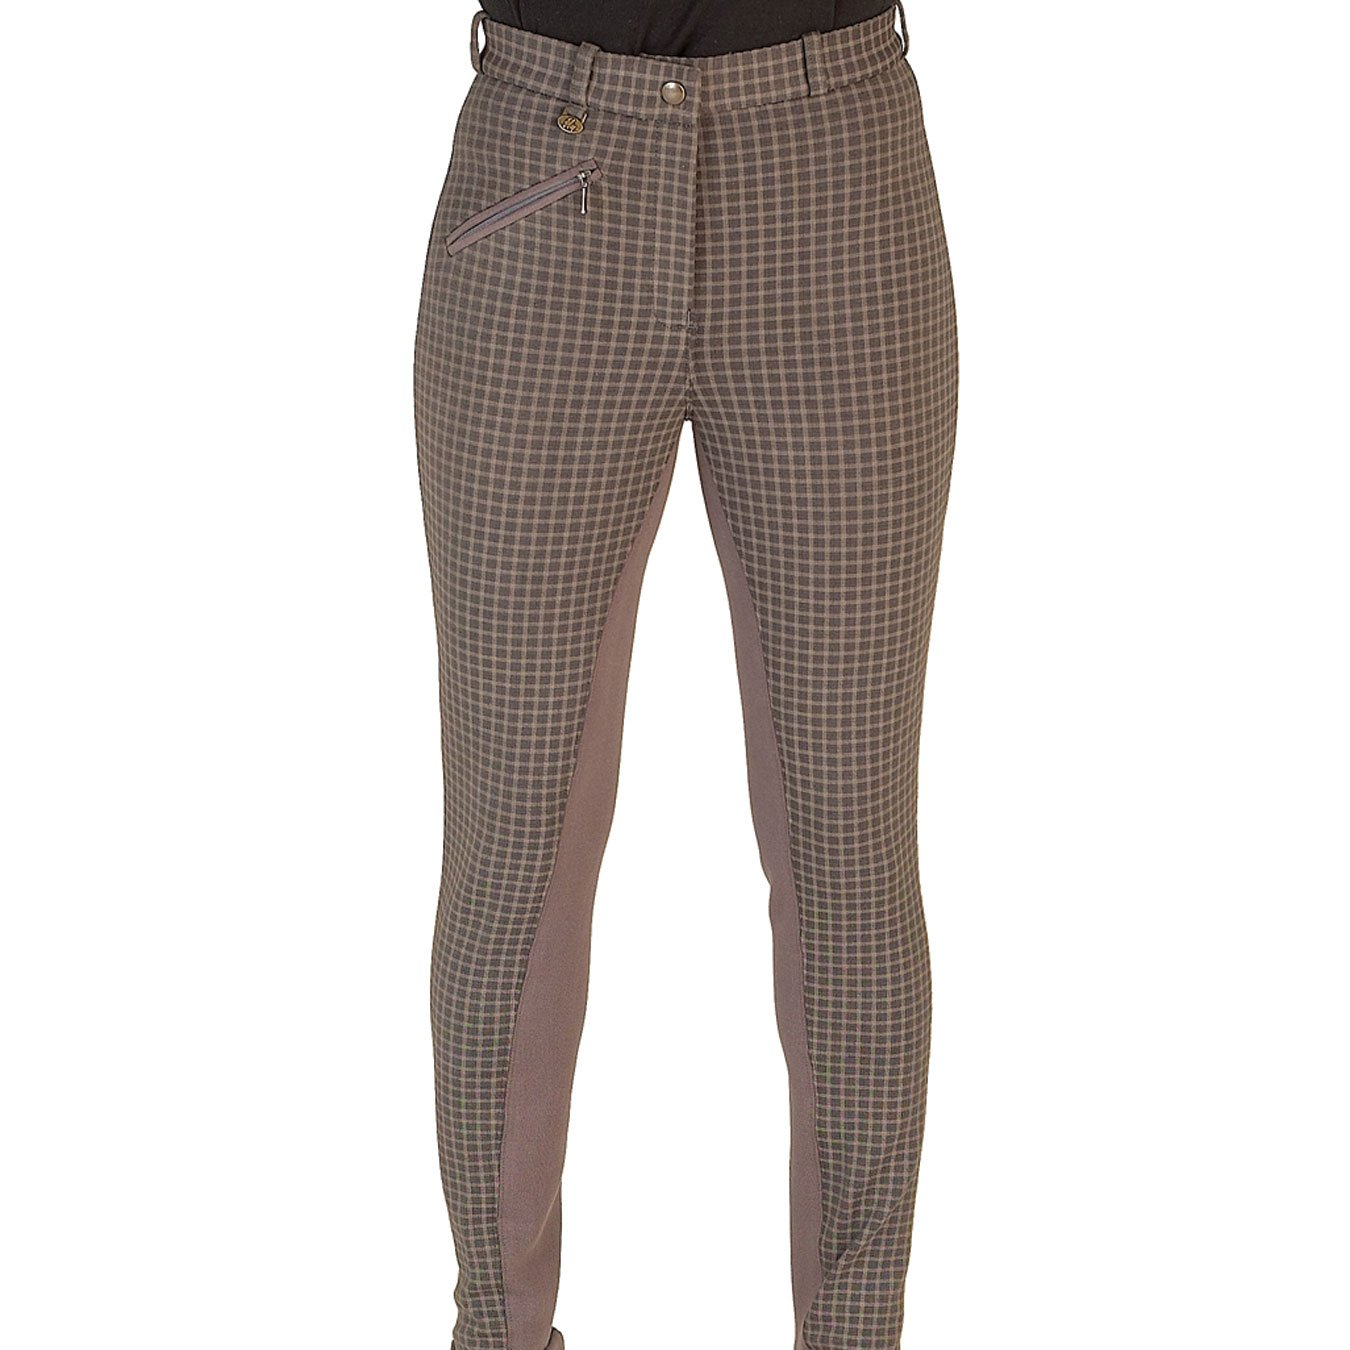 HyPerformance Rio Ladies Jodhpurs - Two tone check printed knitted jodhpurs with plain seat - Classic cut , comfortable & flattering William Hunter Equestrian